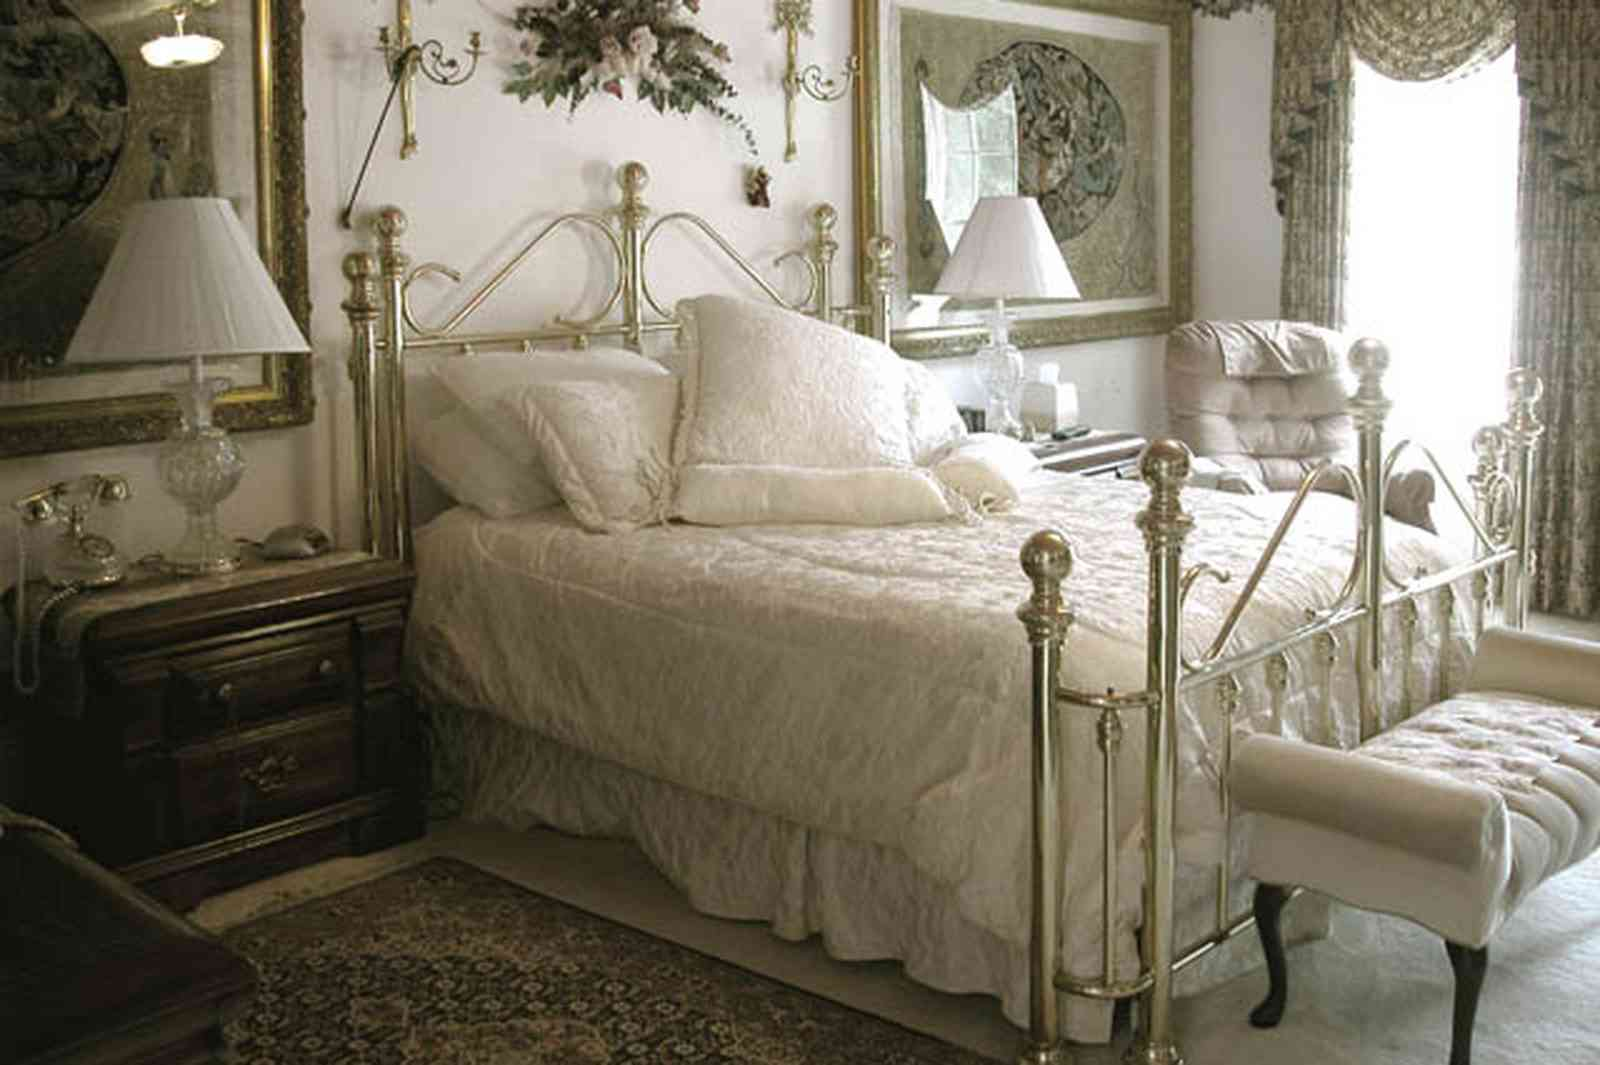 Scenic-Highway:-3780-Scenic-Ridge-Drive_09.jpg:  brass bed, battenberg lace, oriental rug, settee, swag drapes, marble floors,